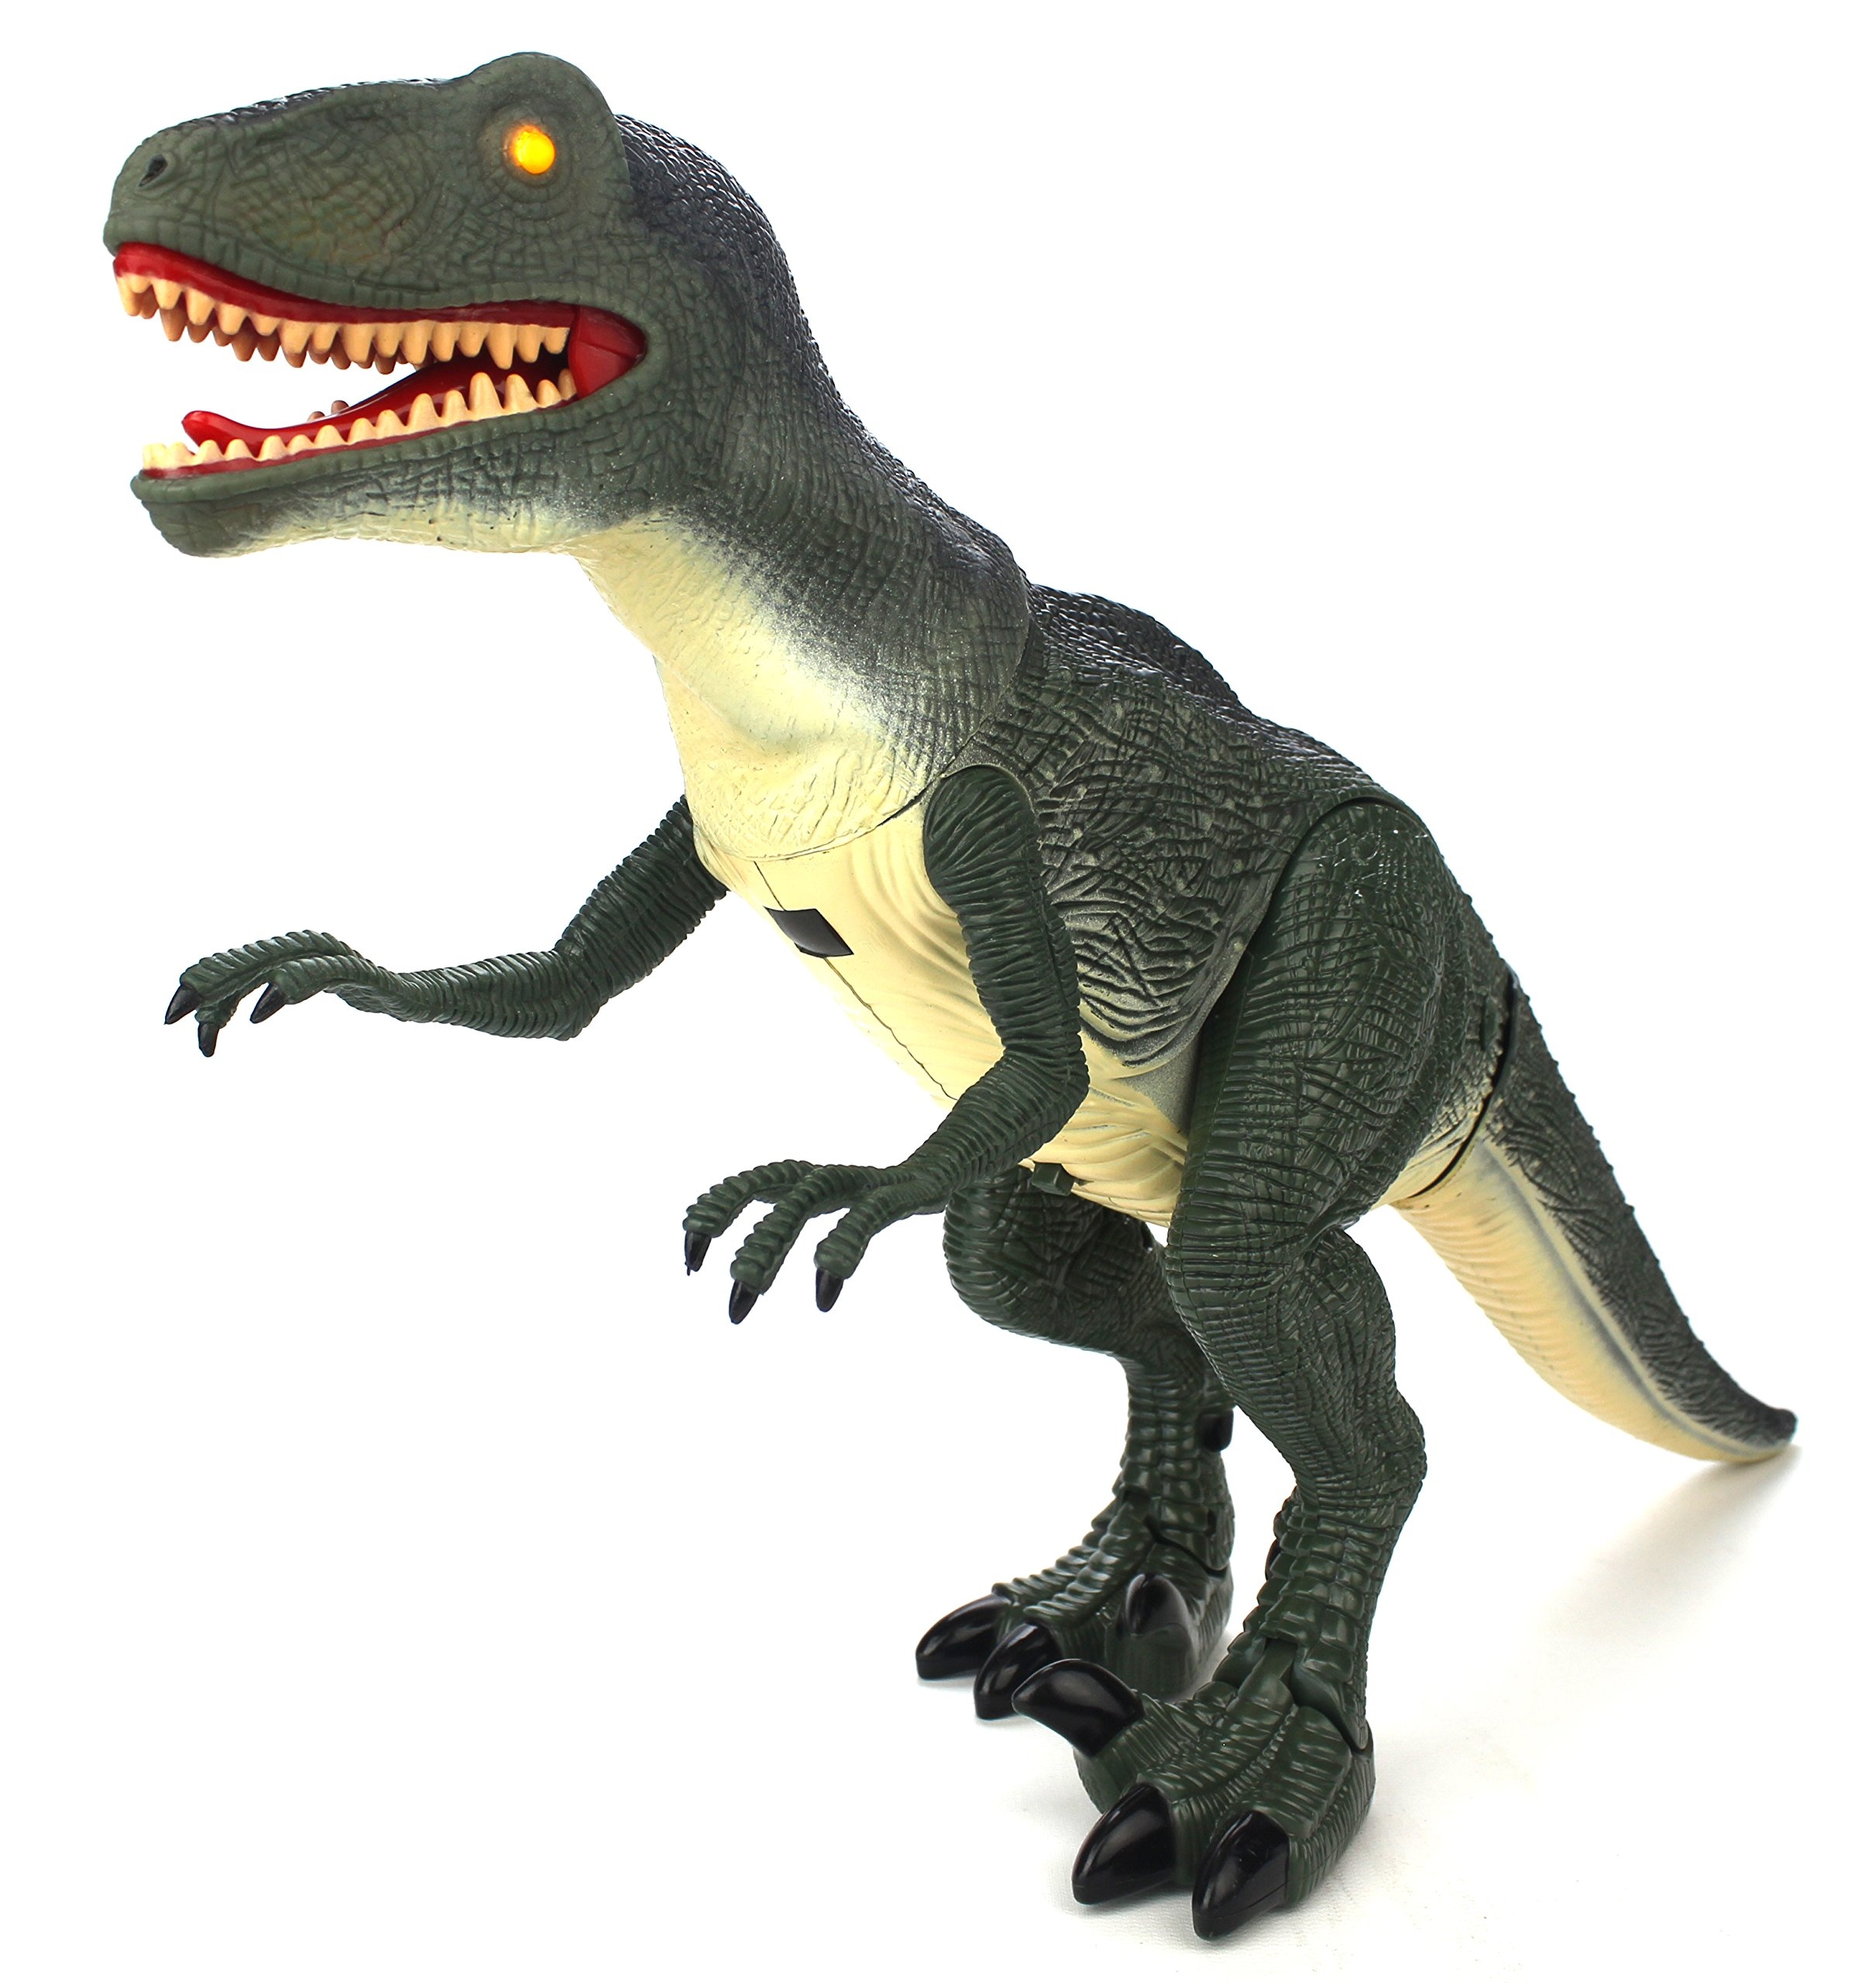 Dinosaur Planet Raptor Remote Controlled RC Battery Operated Toy Velociraptor Figure w/Shaking Head, Walking Movement, Light Up Eyes & Sounds by Velocity Toys (Image #2)